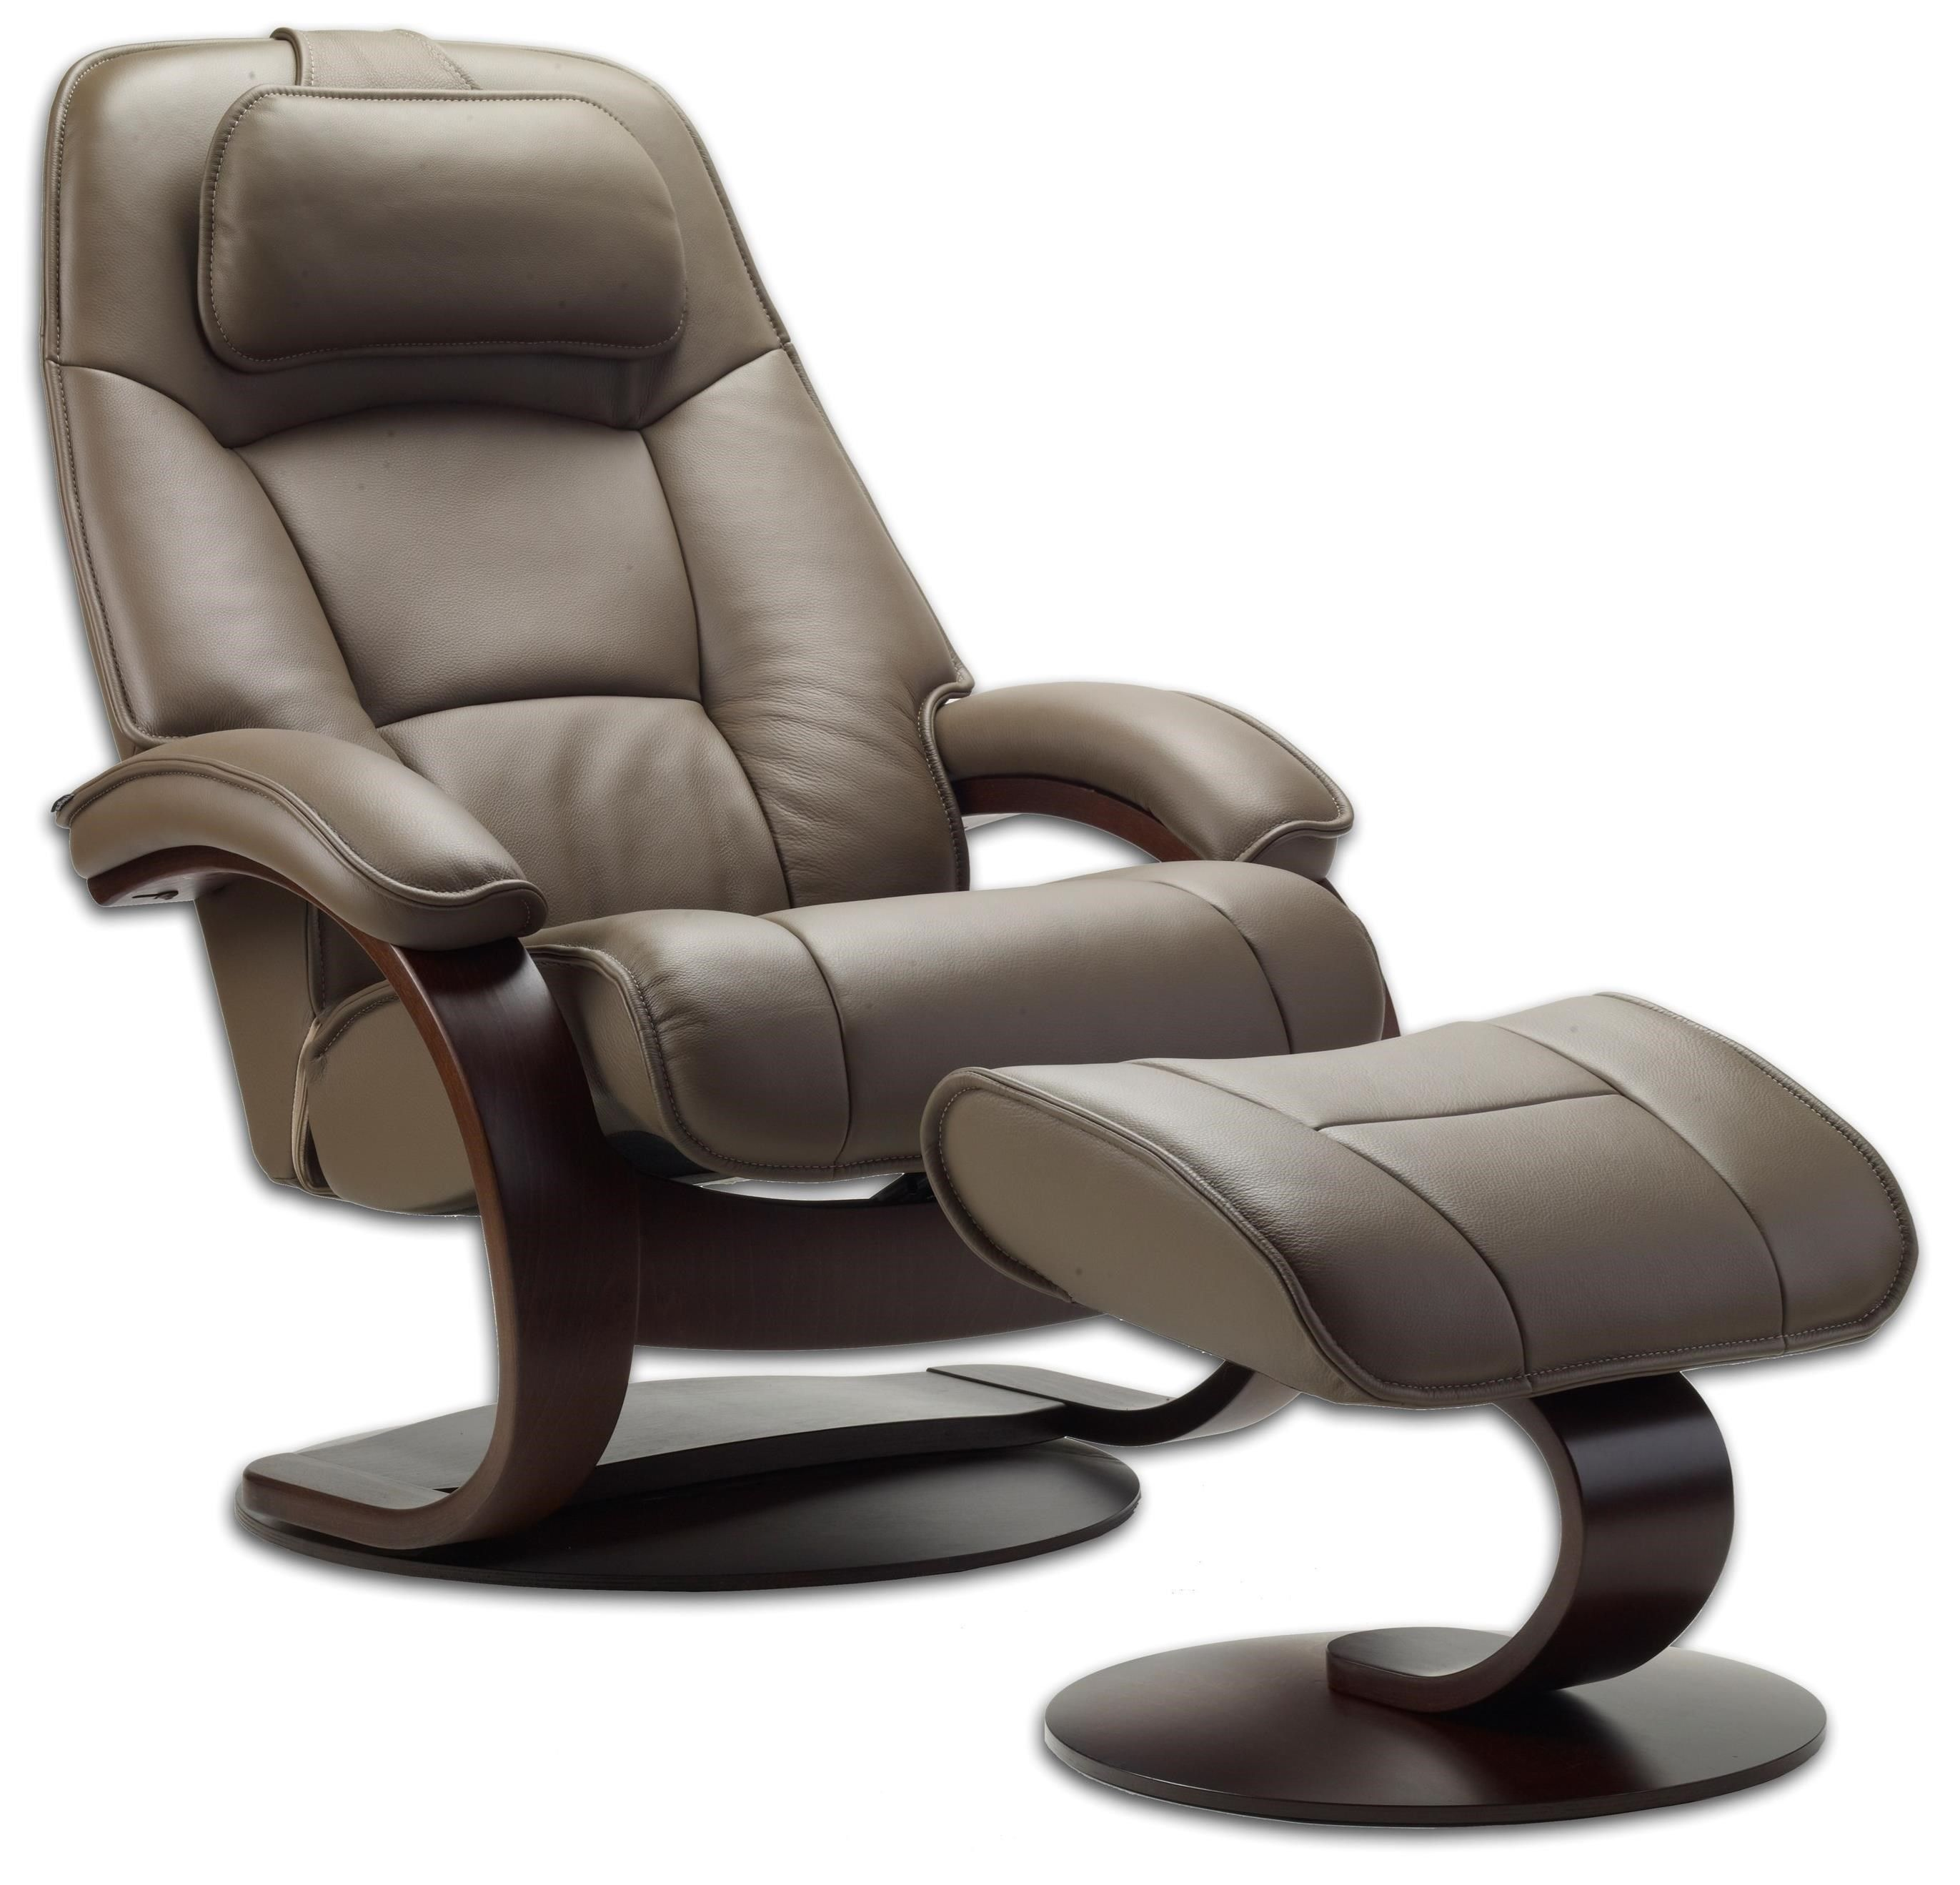 Small Leather Recliners With Ottoman Recliner with